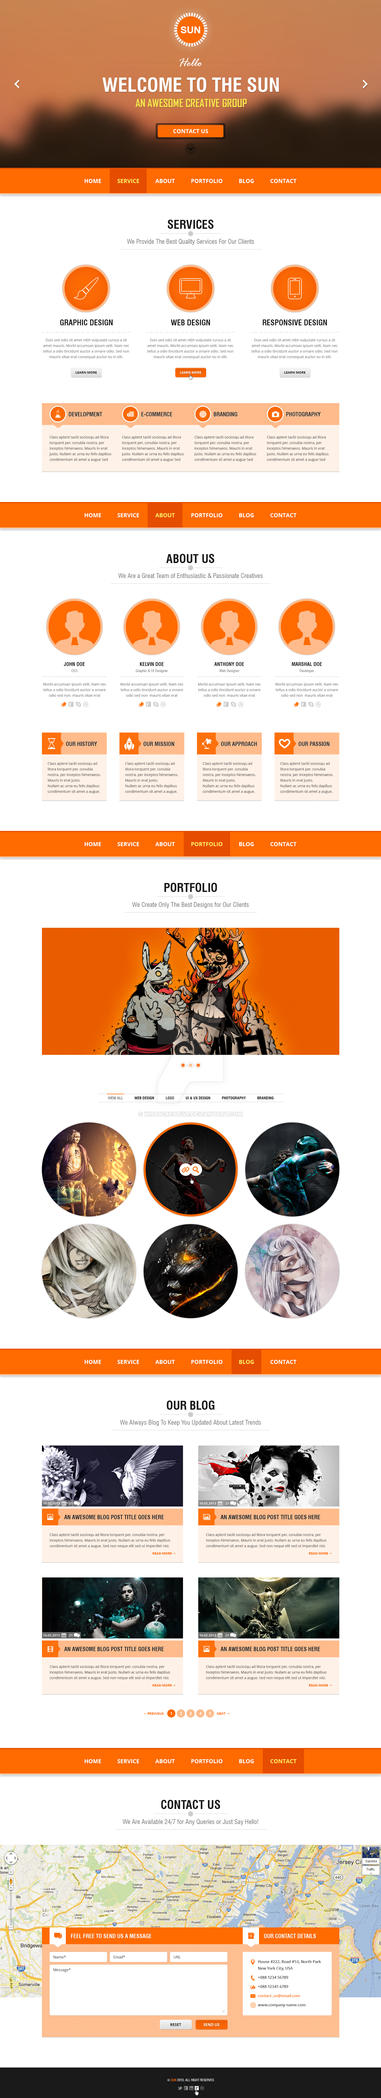 SUN - OnePAGE Paralex by wnabcreative